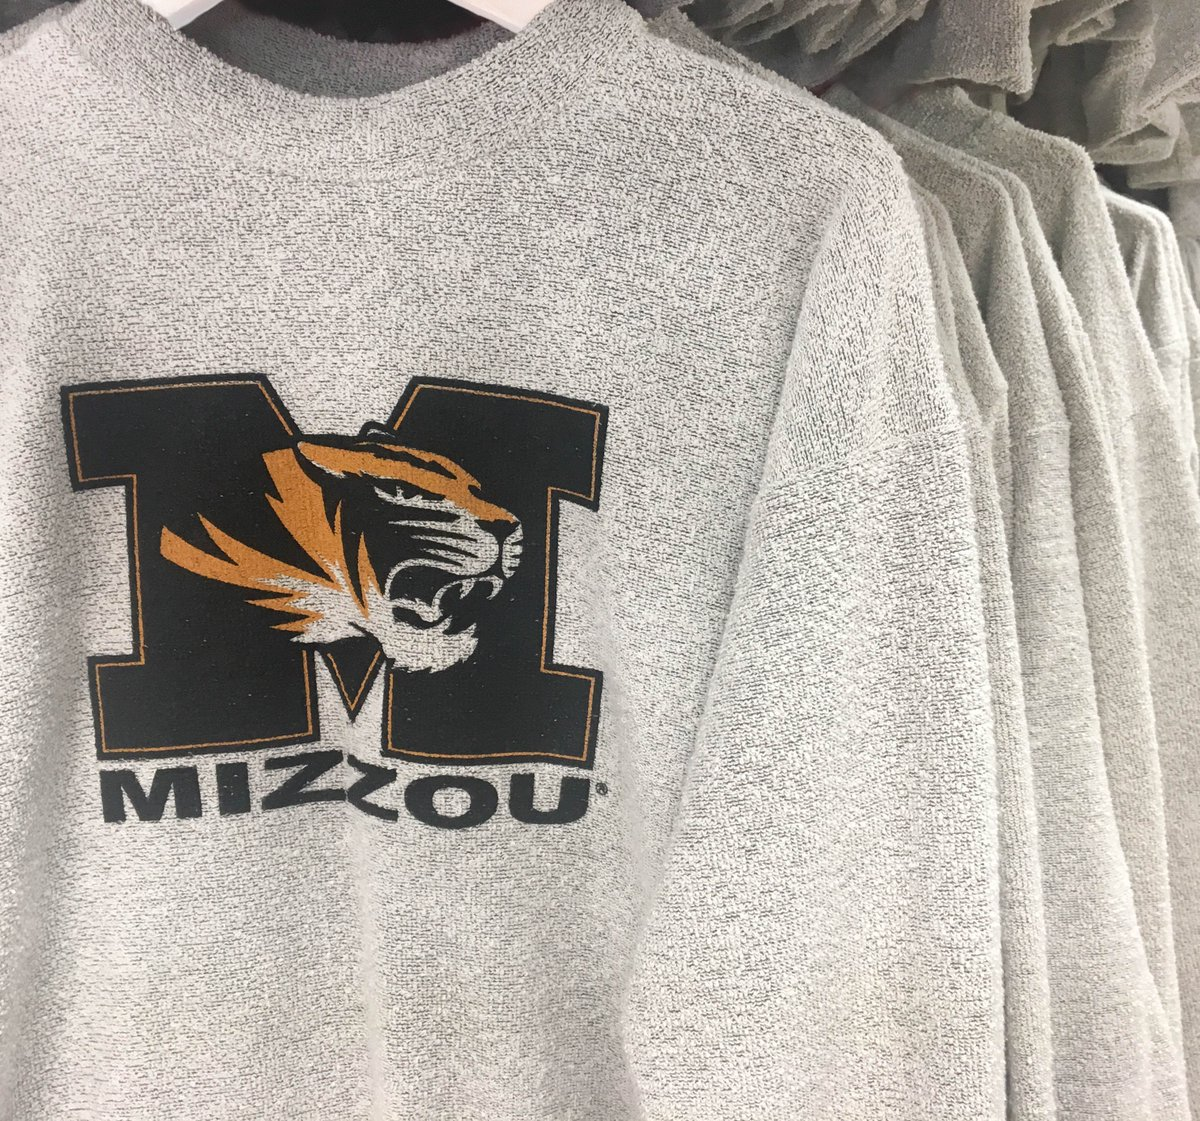 This #TwitterTuesday goes out to #Mizzou  RT this post &amp; give us a follow for a chance to win this  woolly! #TheOriginalWoolly<br>http://pic.twitter.com/mB4ixdW7b6